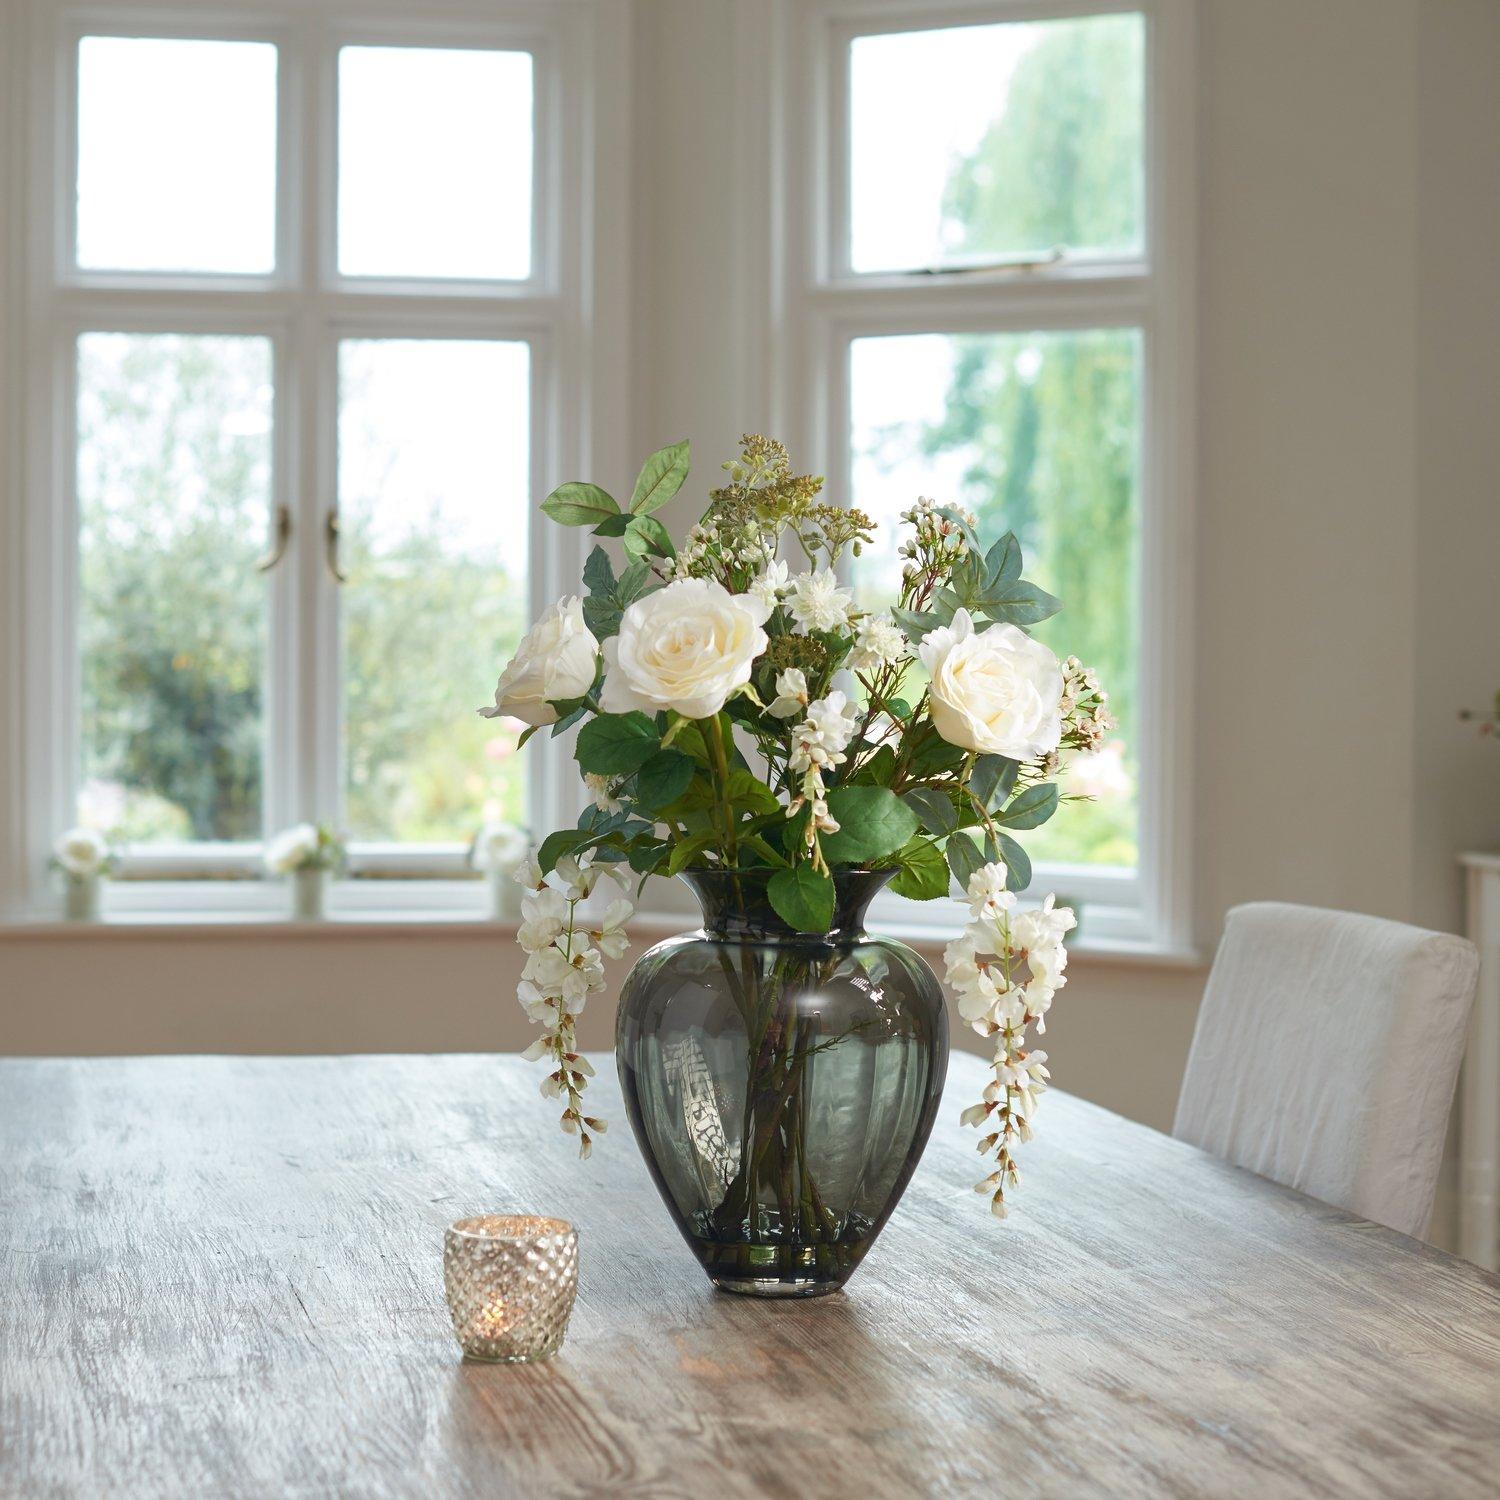 ROSES, WISTERIA AND FOLIAGE IN SMOKED OPTIC HEART VASE